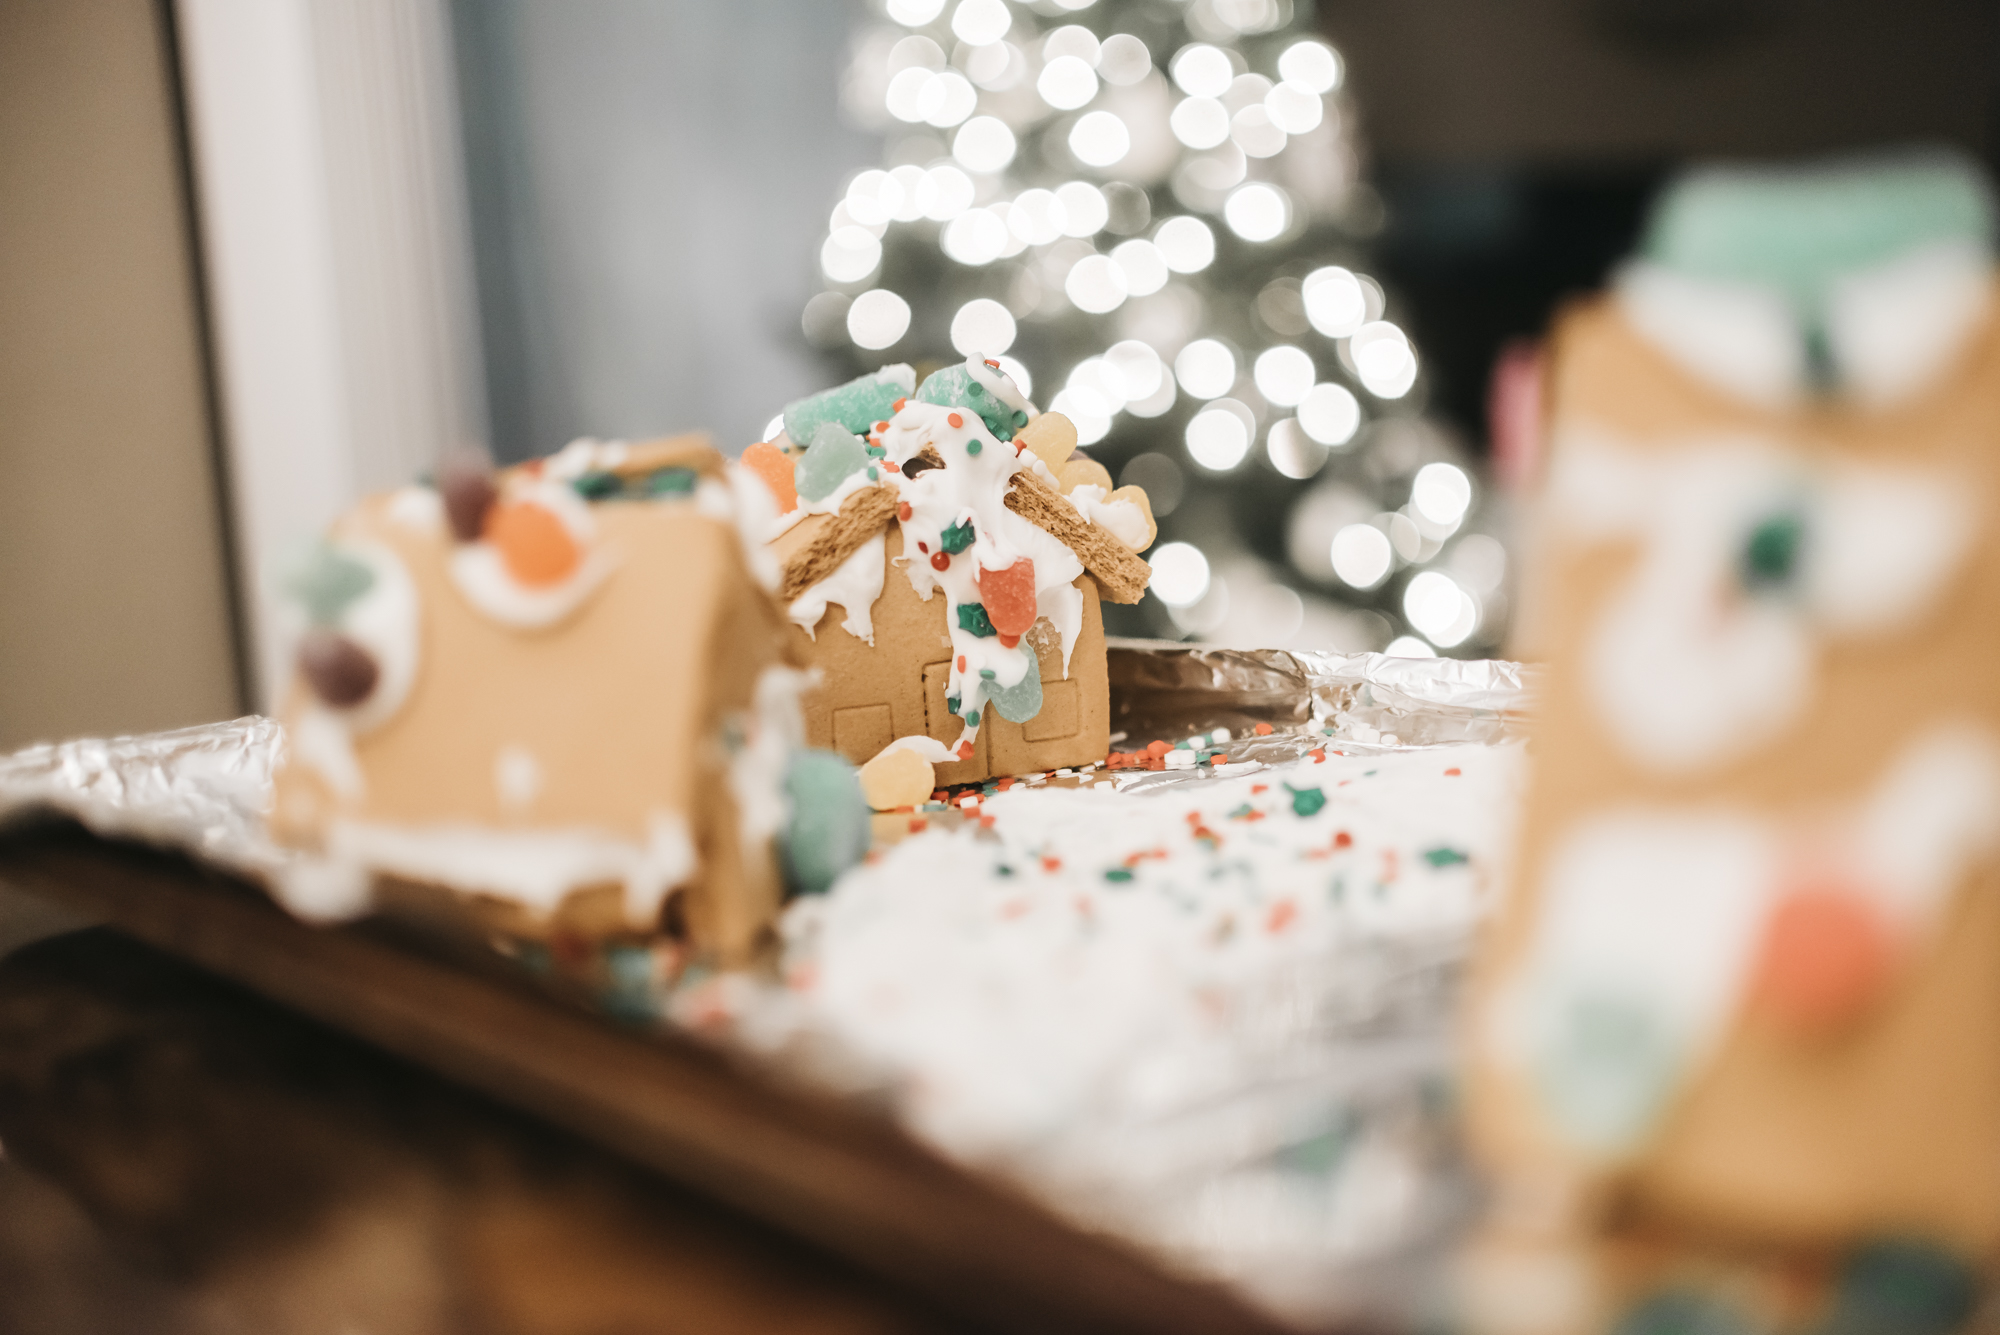 samanthawhitford.com gingerbread village christmas 2018 (13).jpg